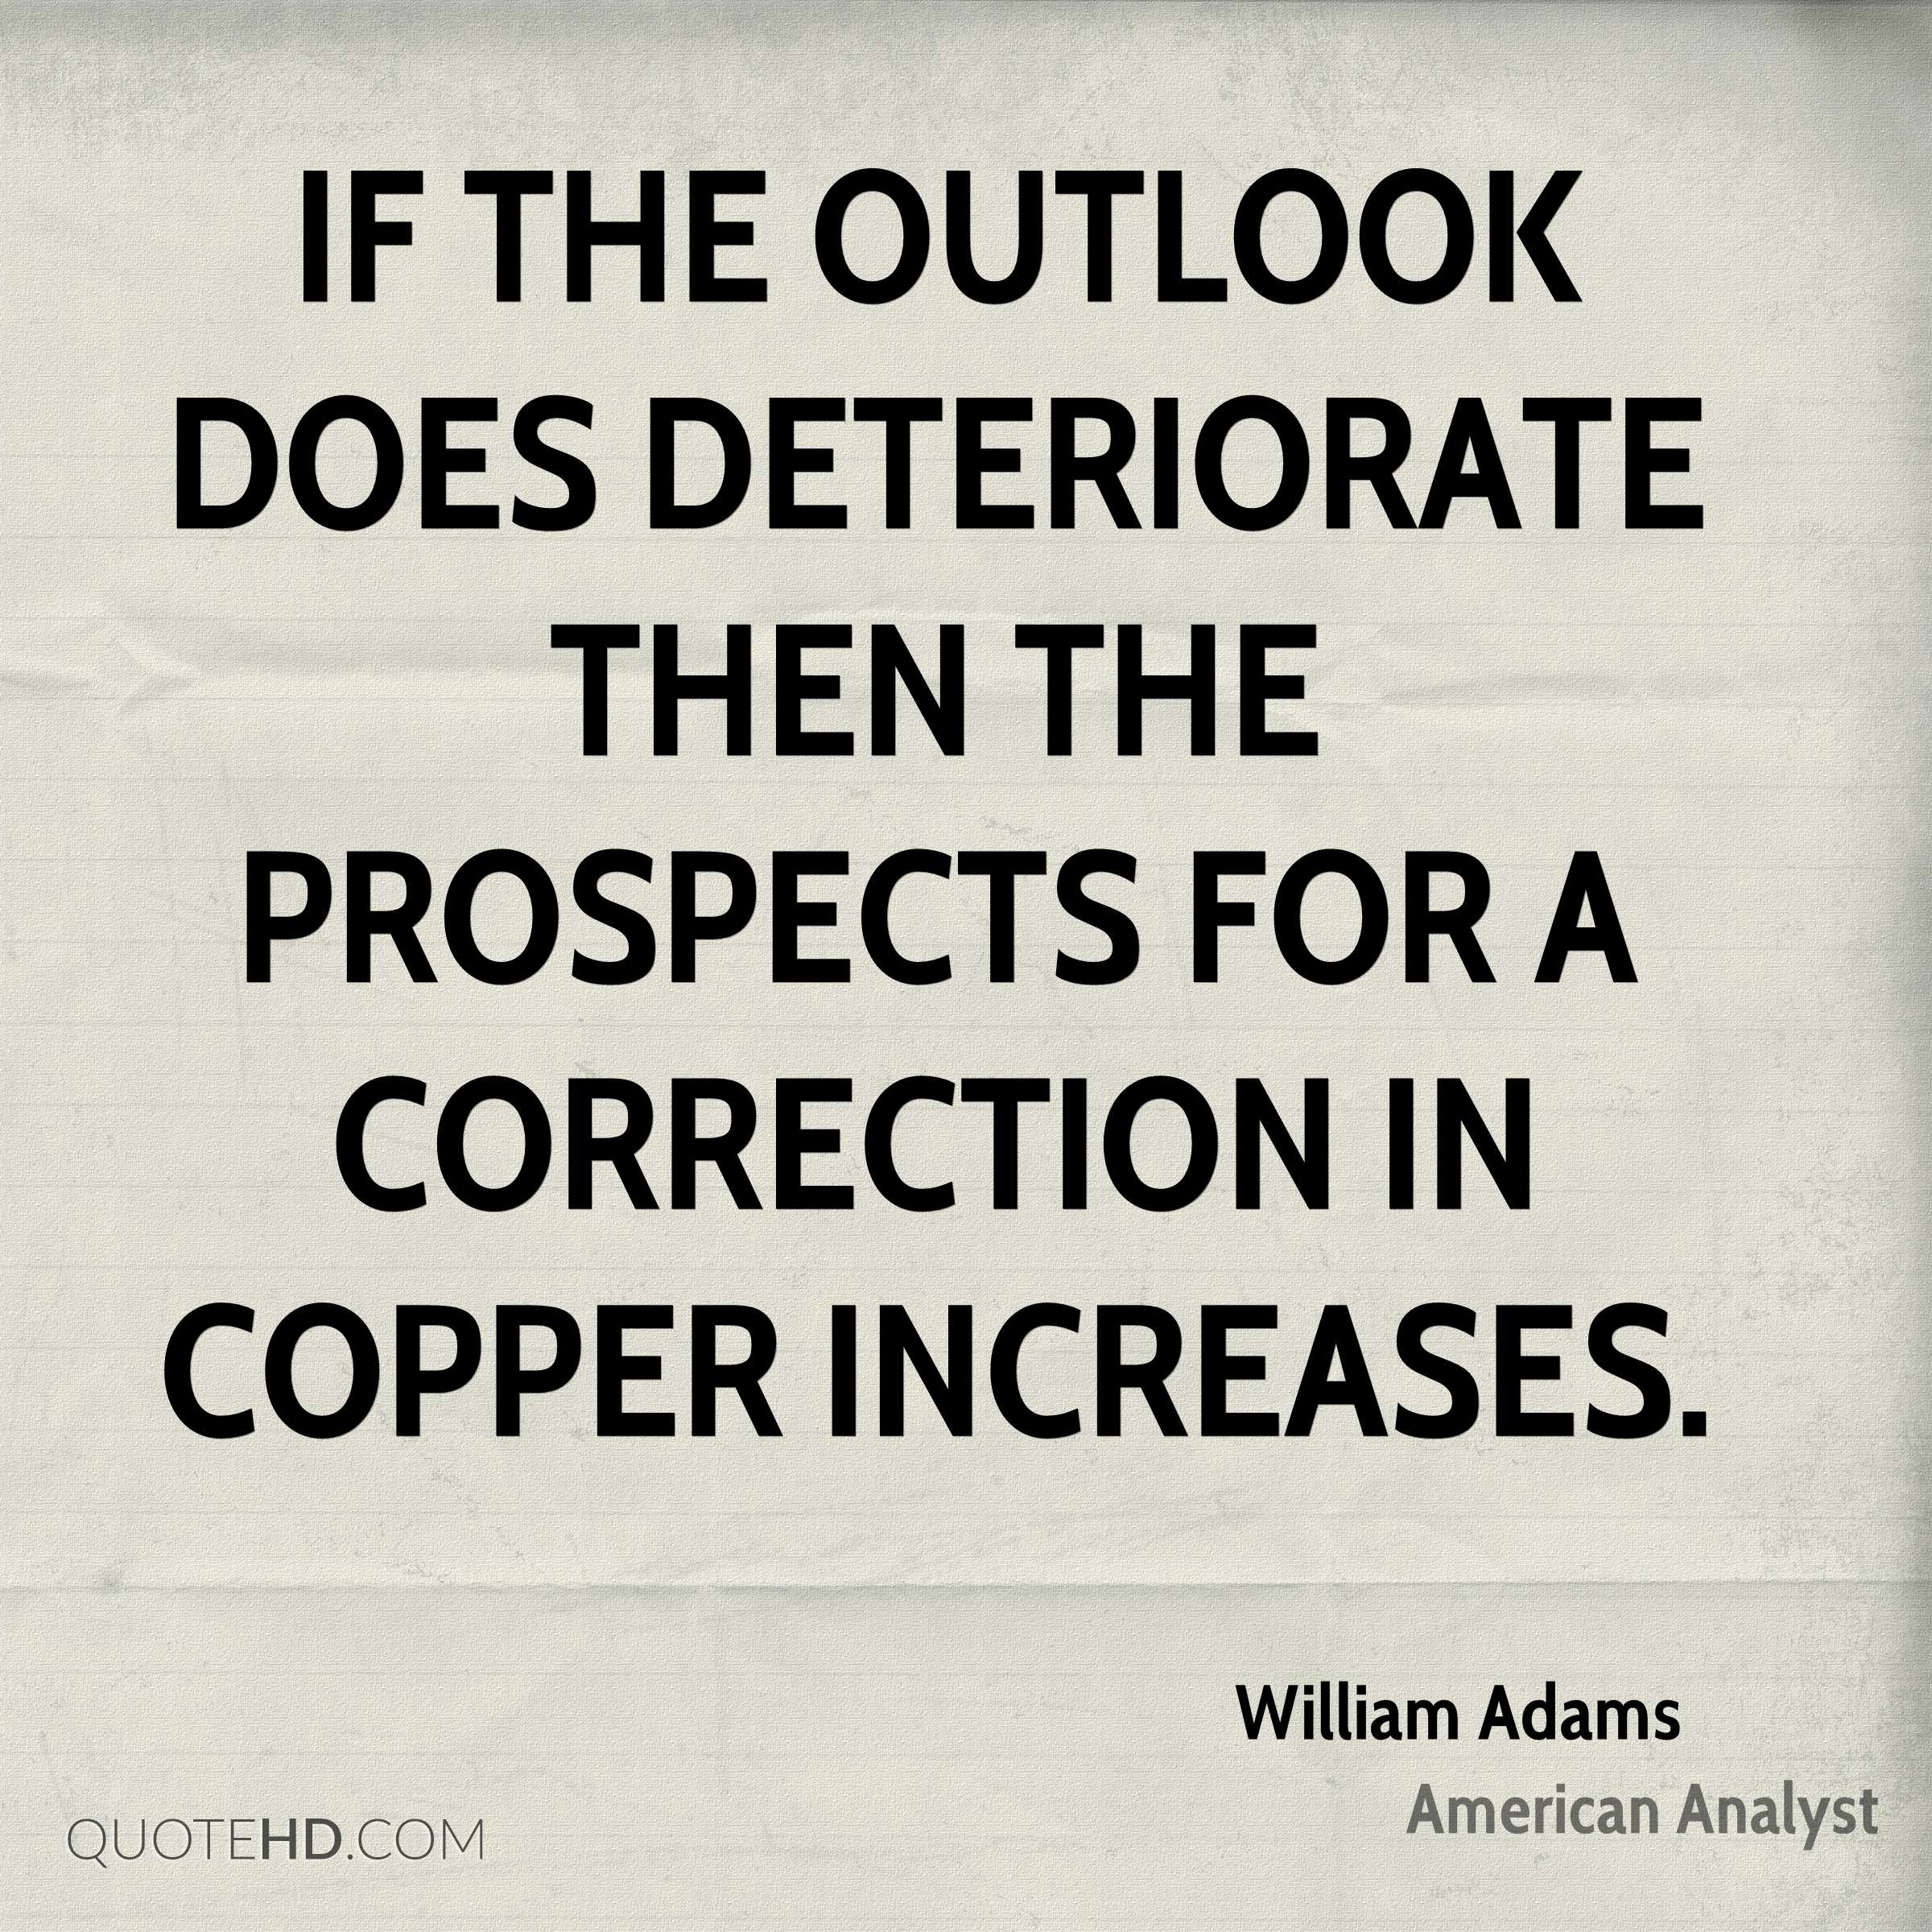 If the outlook does deteriorate then the prospects for a correction in copper increases.